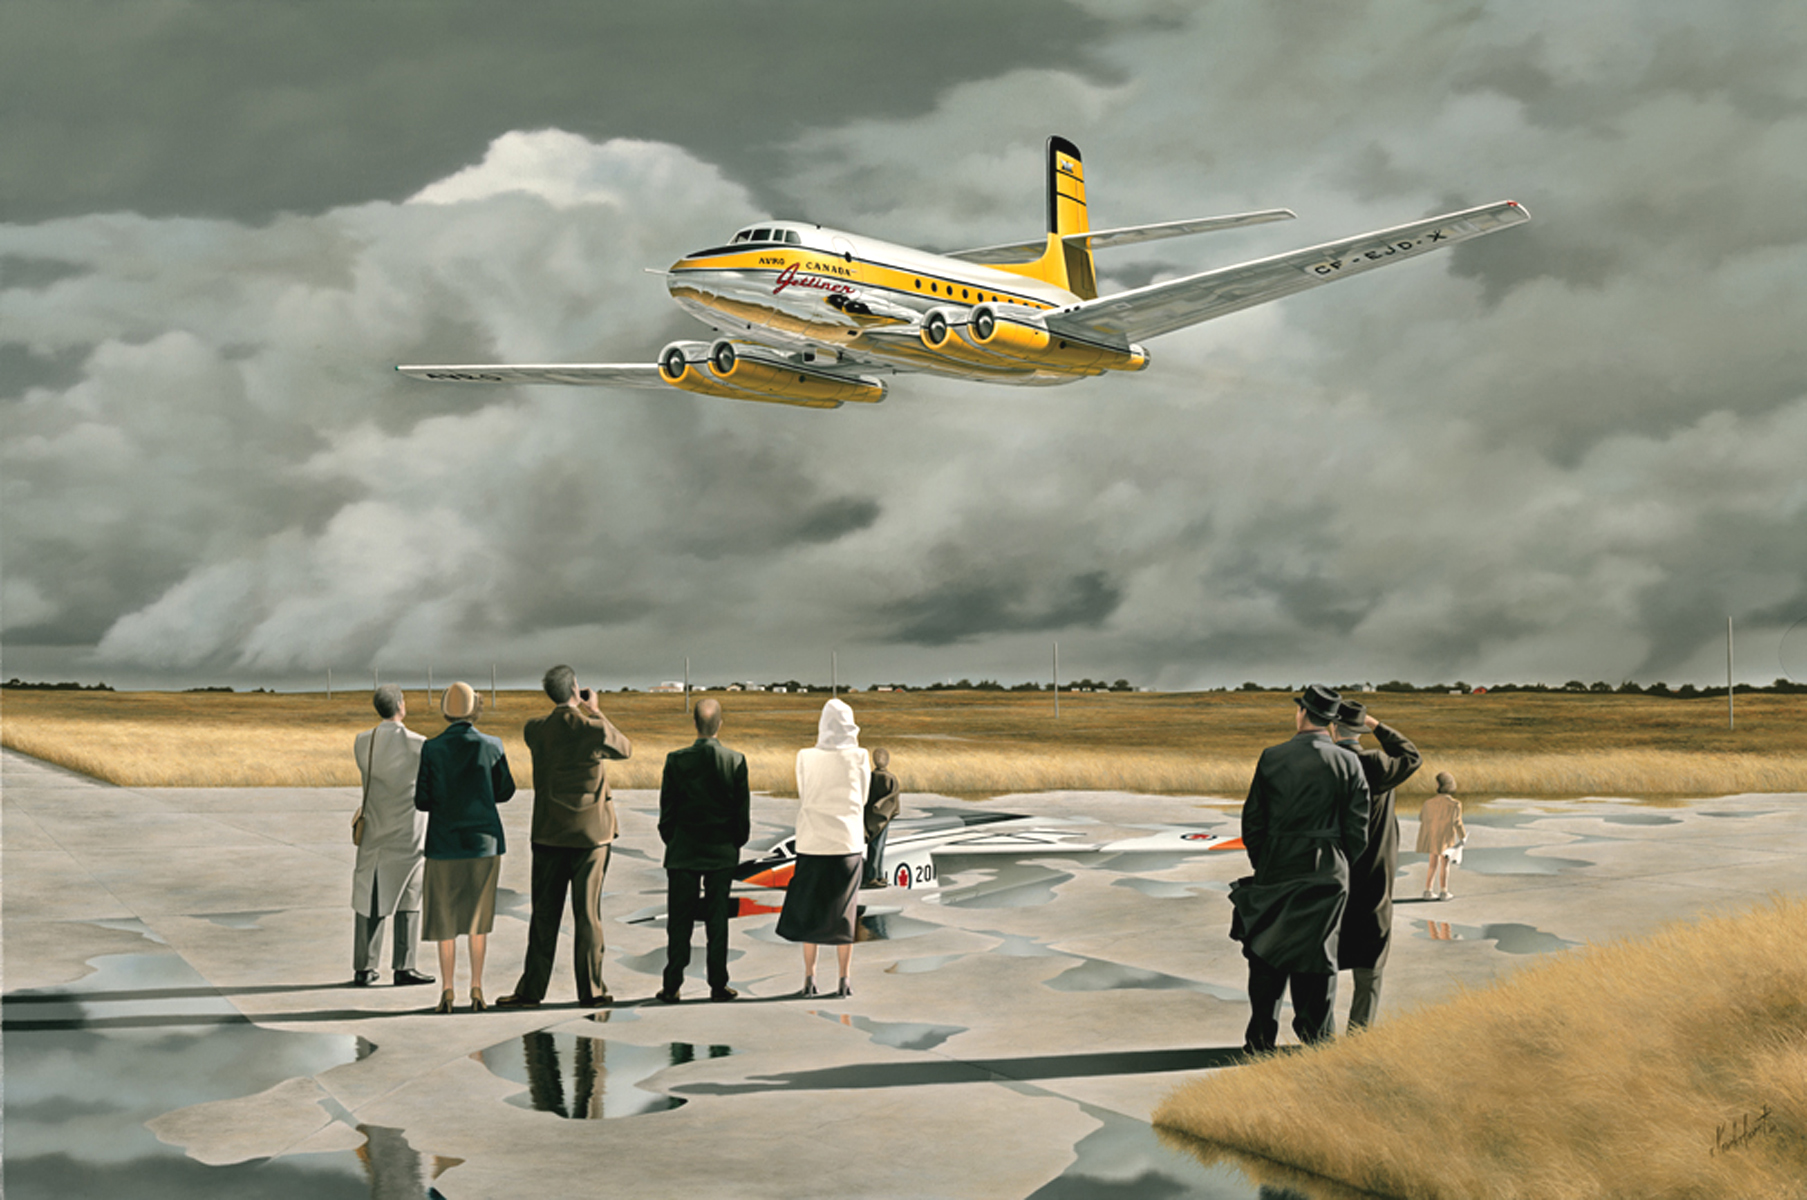 """14.    THE JETLINER - 2001, 34"""" x 24"""", Oil on Canvas - SOLD - Greater Toronto Airports Authority Permanent Art Collection.    This aircraft first flew Aug. 10, 1949 and reached speeds in excess of 500 mph. During the proving trials in 1950/51, the aircraft broke every passenger transport performance record on the books. The Jetliner was also the first jet transport to carry mail across the US. In 1952, National Airlines contracted Avro for a small fleet and Howard Hughes was so impressed with the aircraft that he wanted 30 aircraft for TWA. Unfortunately, the Canadian government ordered the Jetliner program halted and told Avro to tool up for the design and manufacture of the CF-100 jet fighter. Only one Jetliner was built and in 1956, the aircraft was broken up for scrap after seven years of faultless flying. This painting is also part of the story of aviation designer and engineer James Floyd. As VP and Director of Engineering for Avro Canada, Mr. Floyd was also responsible for    the Avro Arrow    . The reflection of Arrow 201 can be seen on the tarmac. After the Arrow was cancelled, Floyd took his team to England and conducted all the early feasibility studies for Hawker-Siddeley on the SST Concorde. The little girl in the painting is holding that future in her hand. Not unexpectedly, the Concorde bears a striking resemblance to the Arrow. The term """"Jetliner"""" was coined by its designer James C. Floyd."""